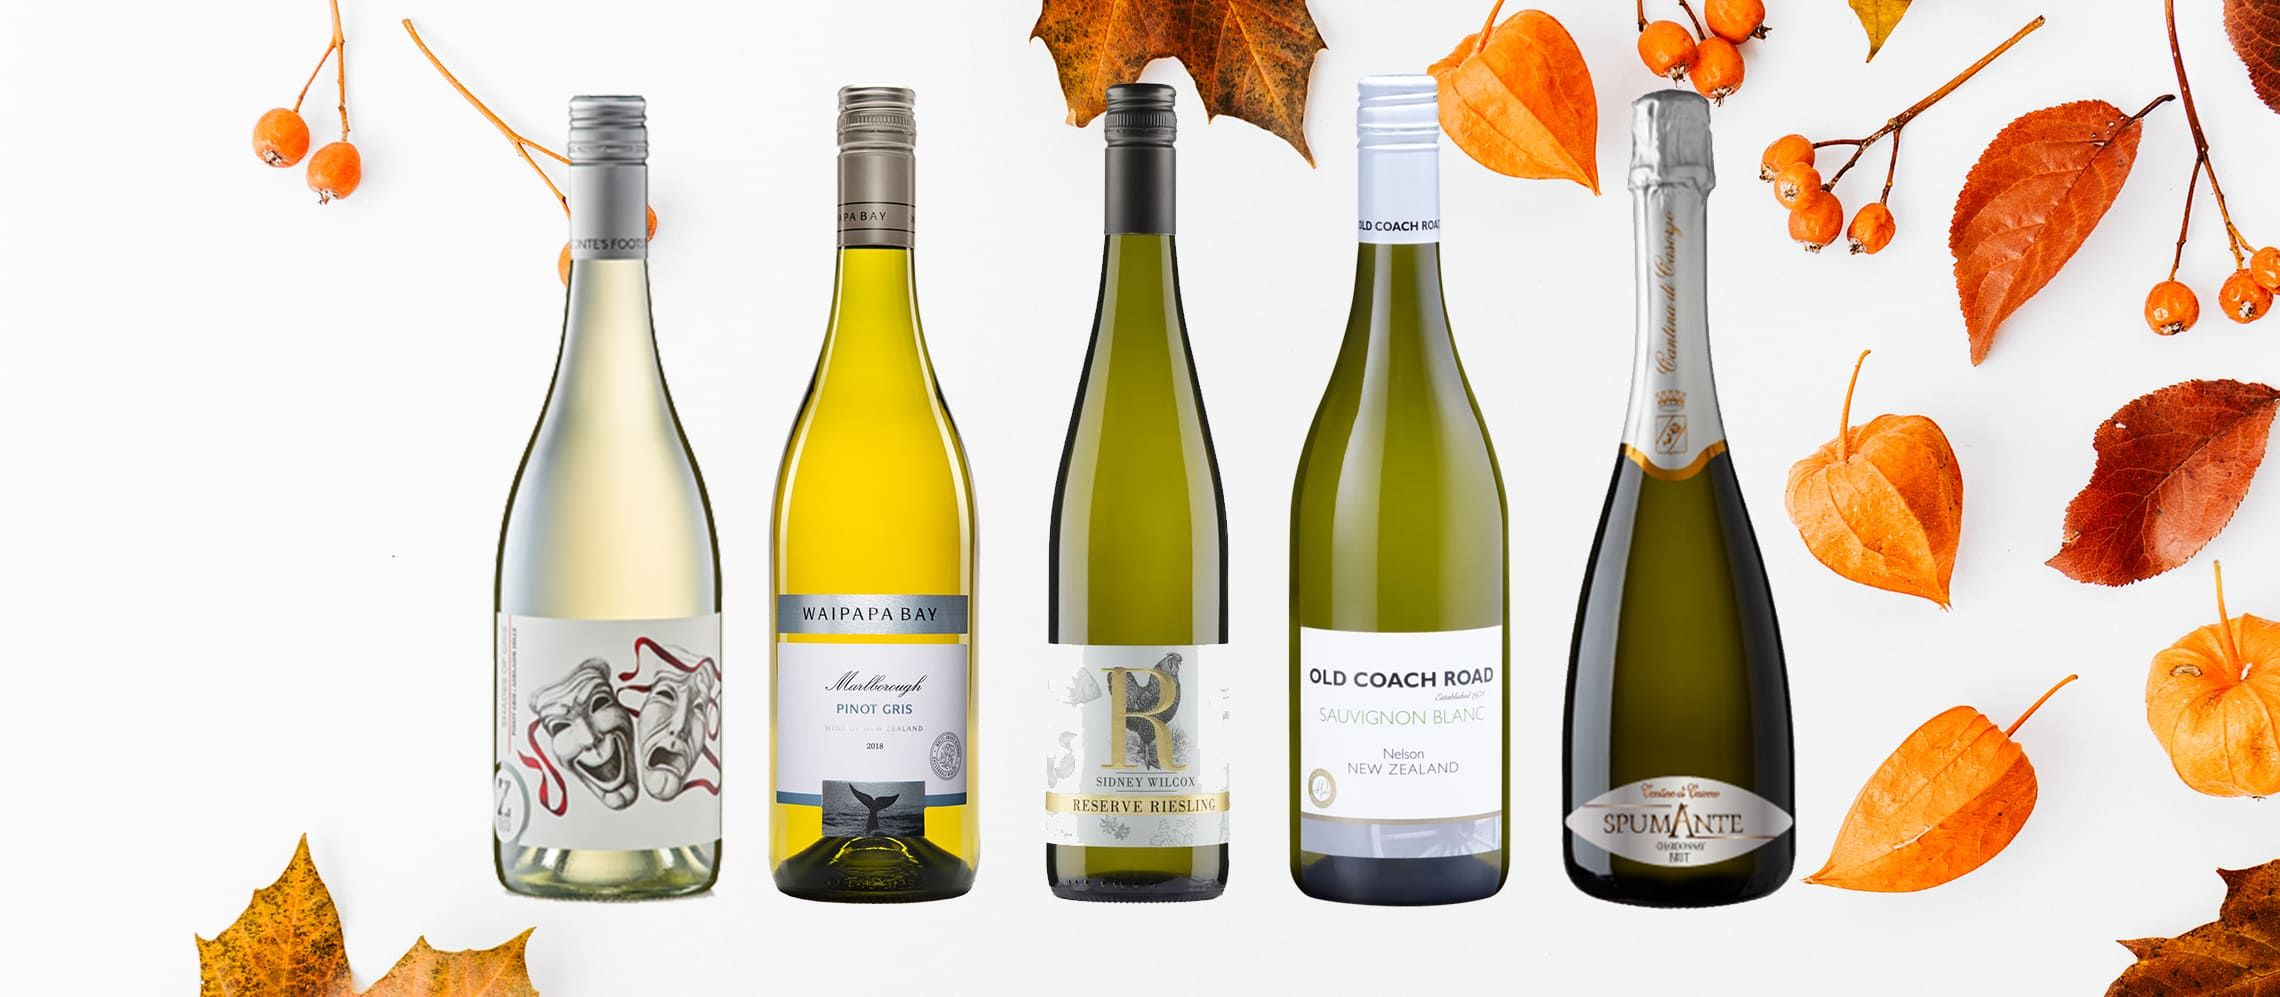 Photo for: 10 White Wines to Serve for Thanksgiving